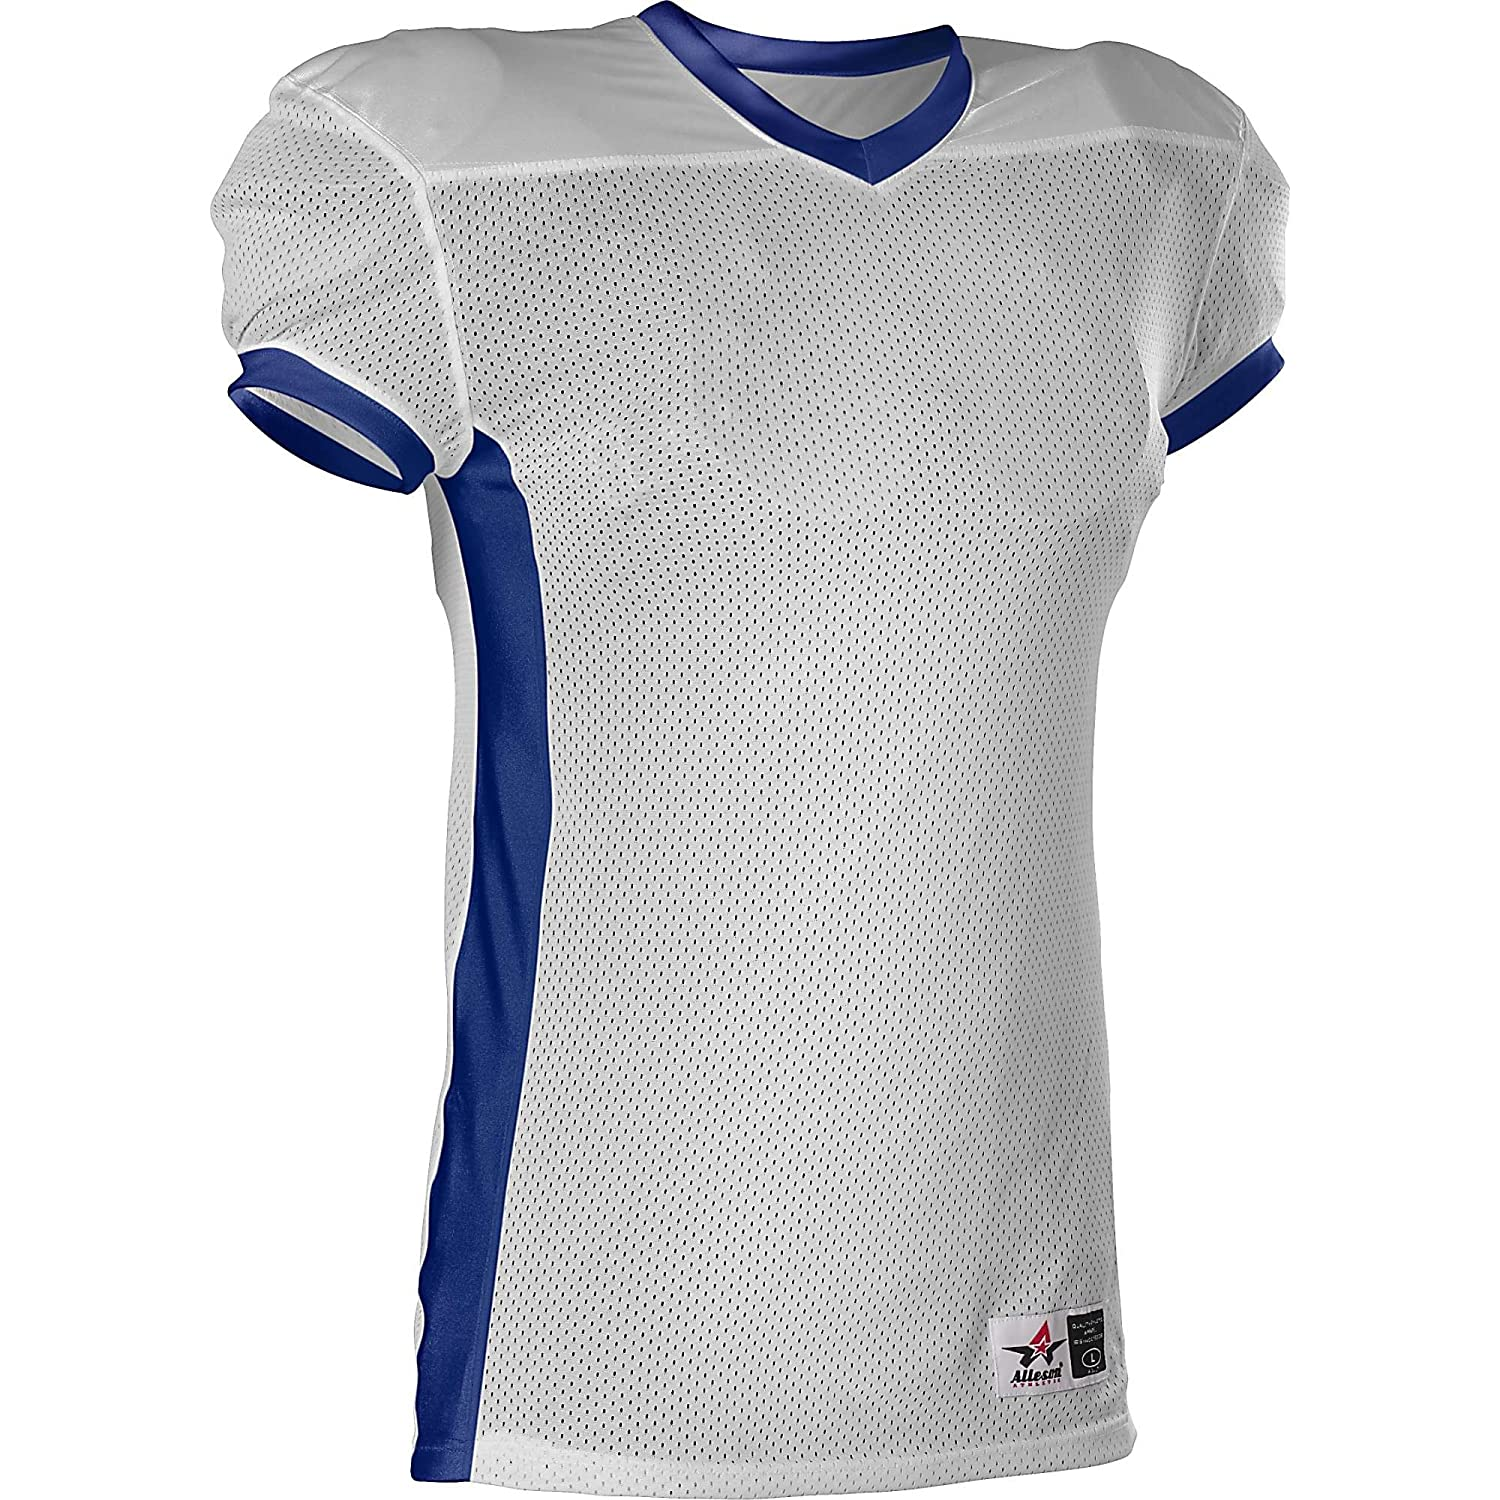 3ddc68088 Amazon.com   Alleson Adult Football Jersey   Sports   Outdoors